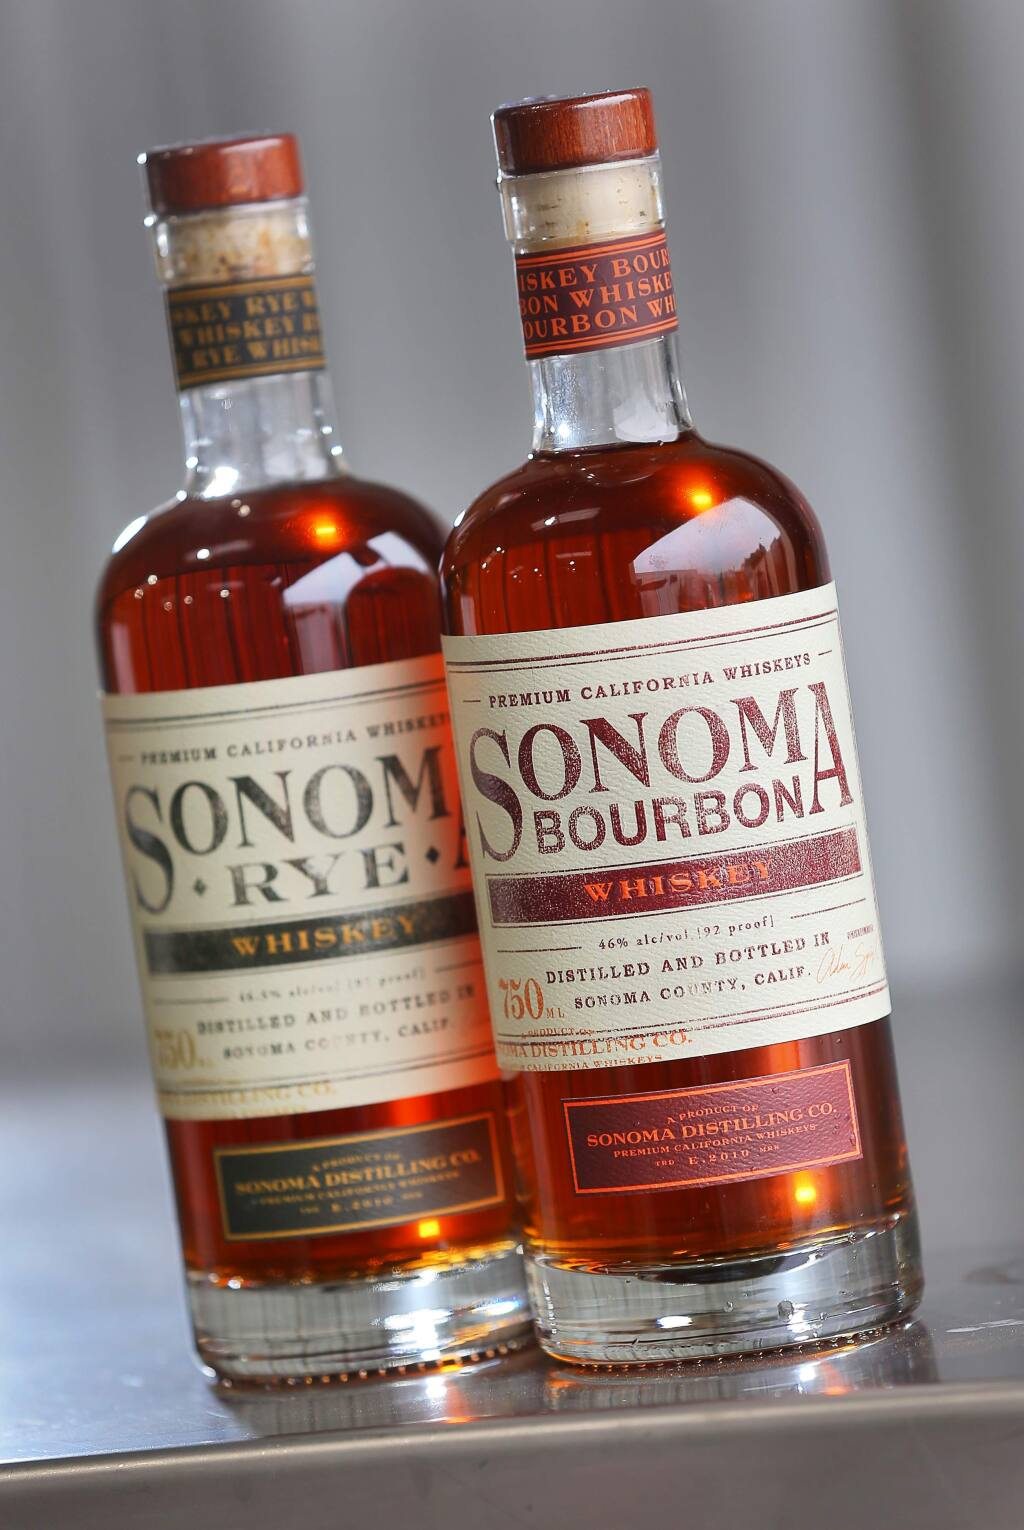 Sonoma Distilling Company whiskey bottles.(Christopher Chung/ The Press Democrat)